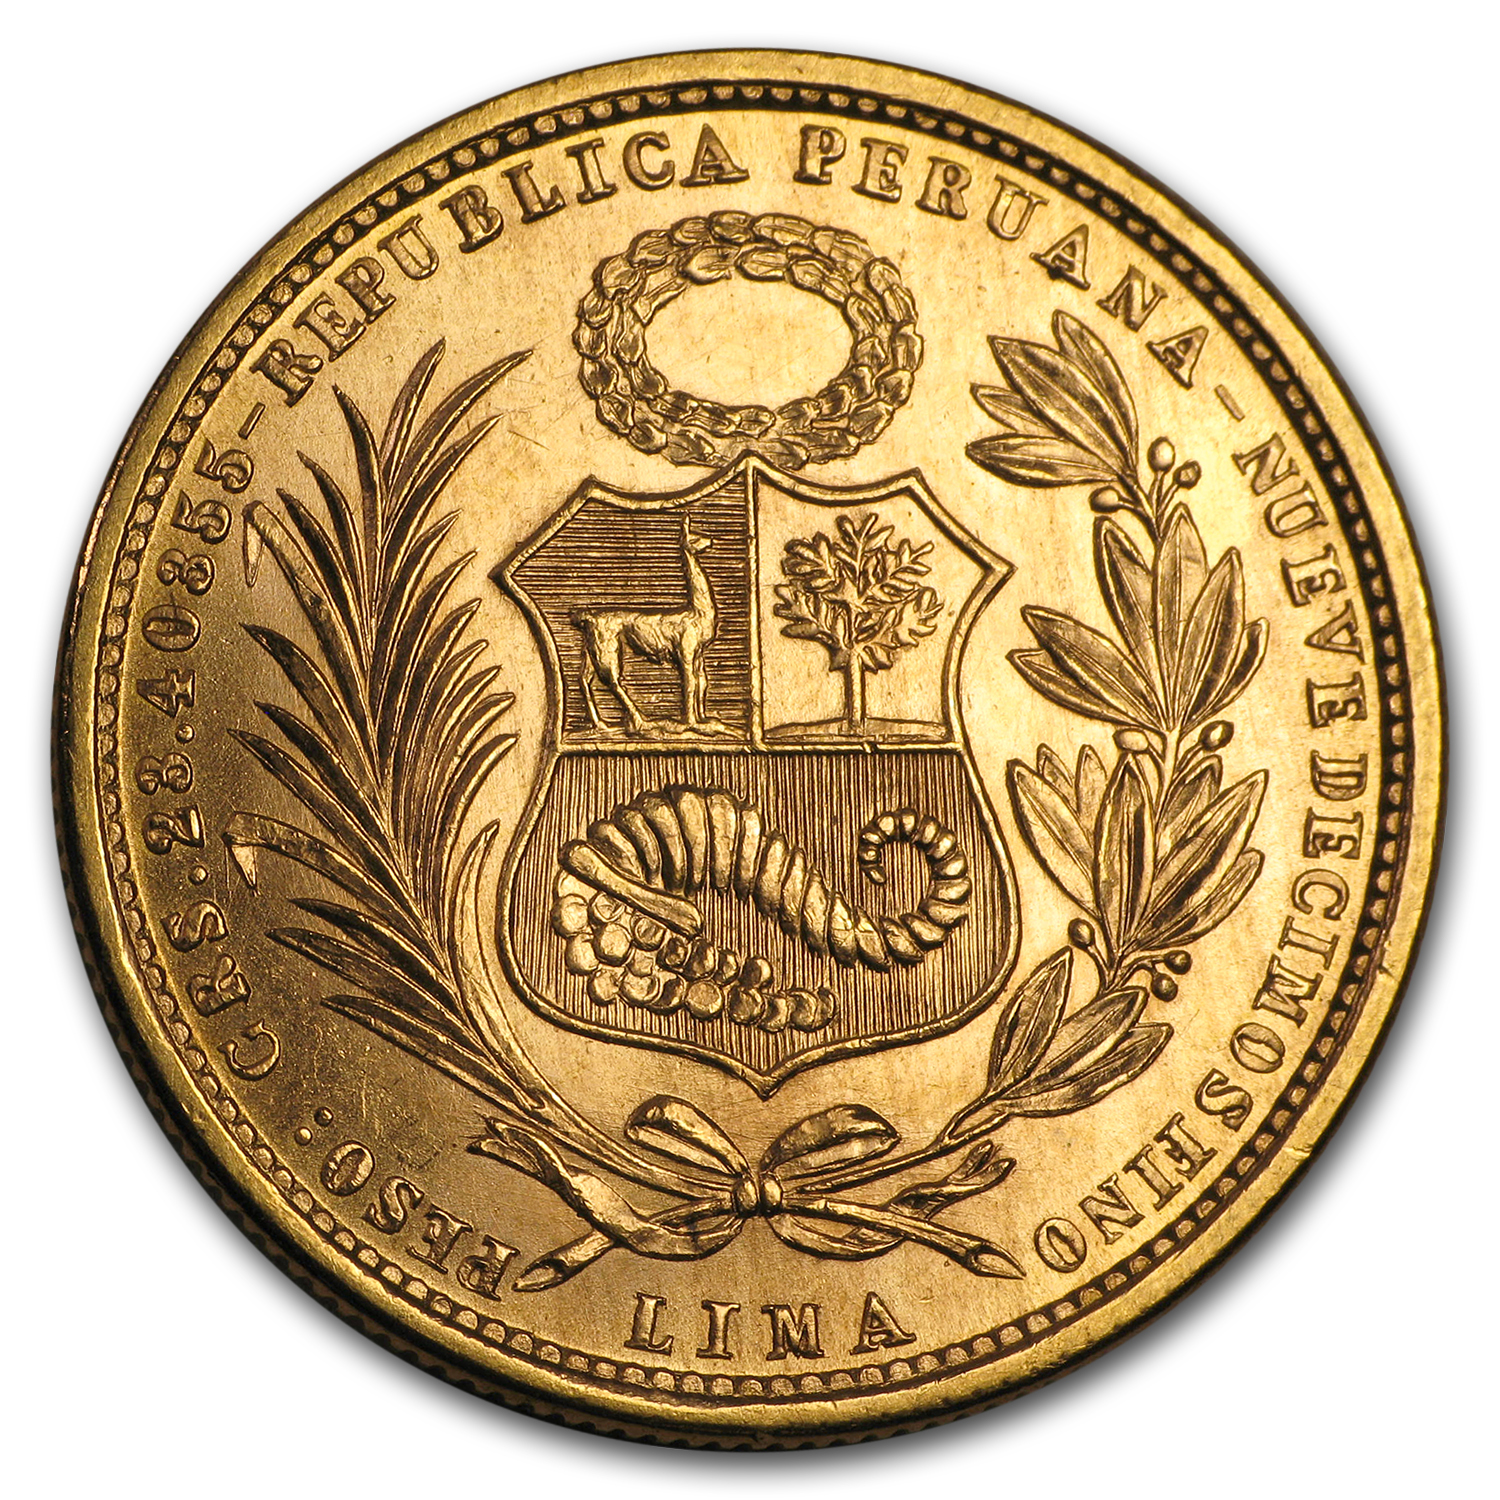 Peru Gold 50 Soles AU or Better (AGW 0.6772, Random)